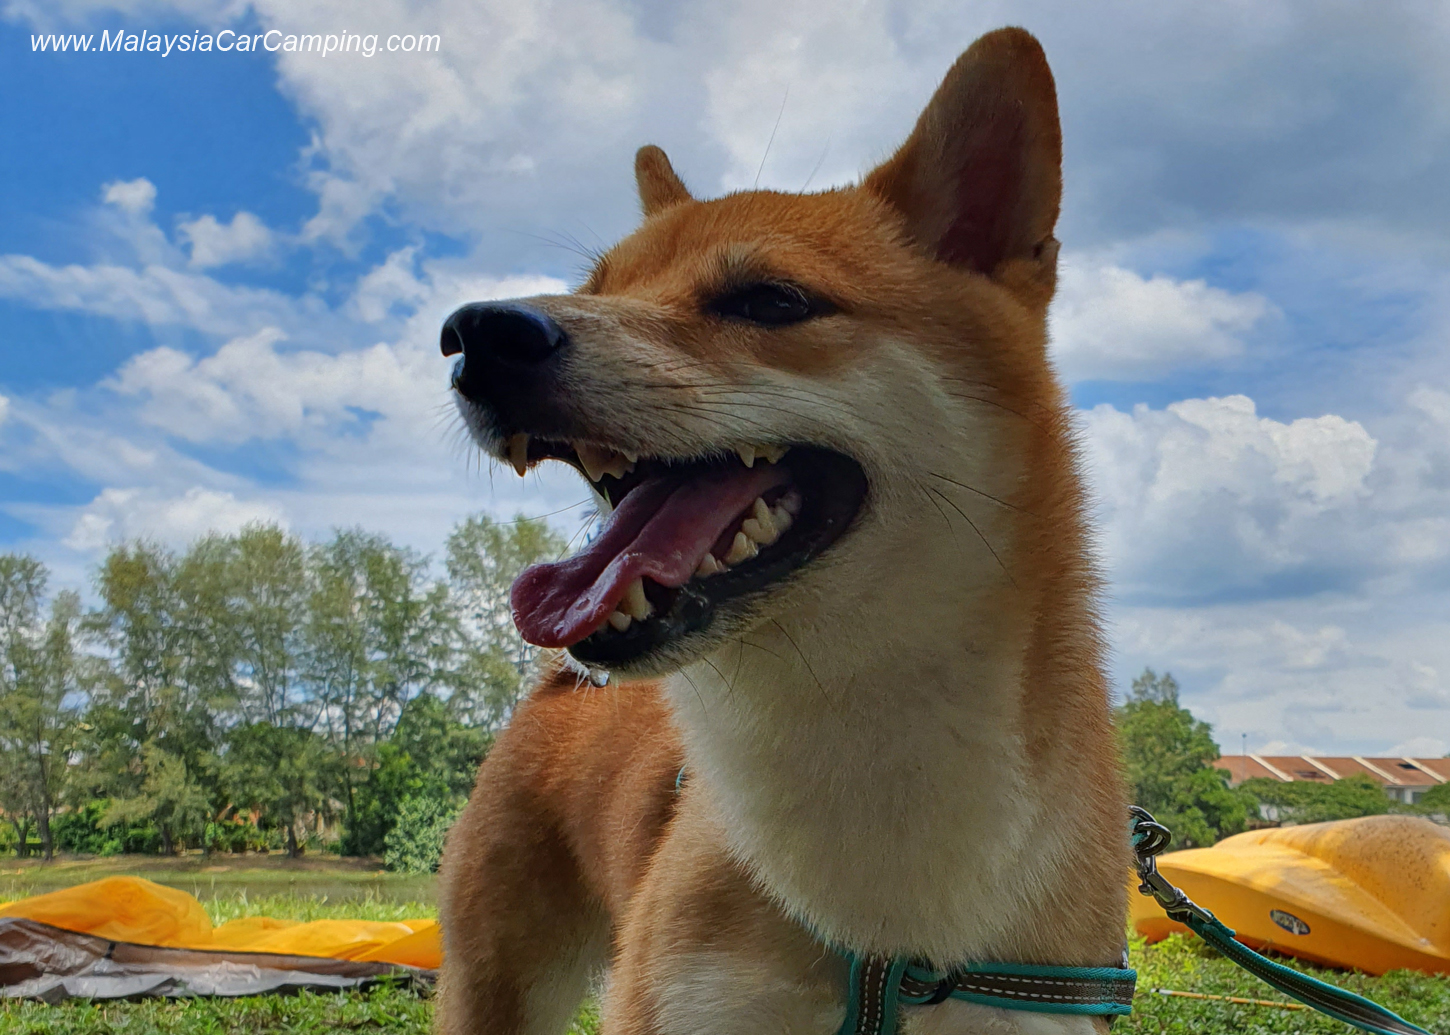 camping_with_dogs_puppy_lakeside_camping_malaysia_car_camping_malaysia_campsite-7